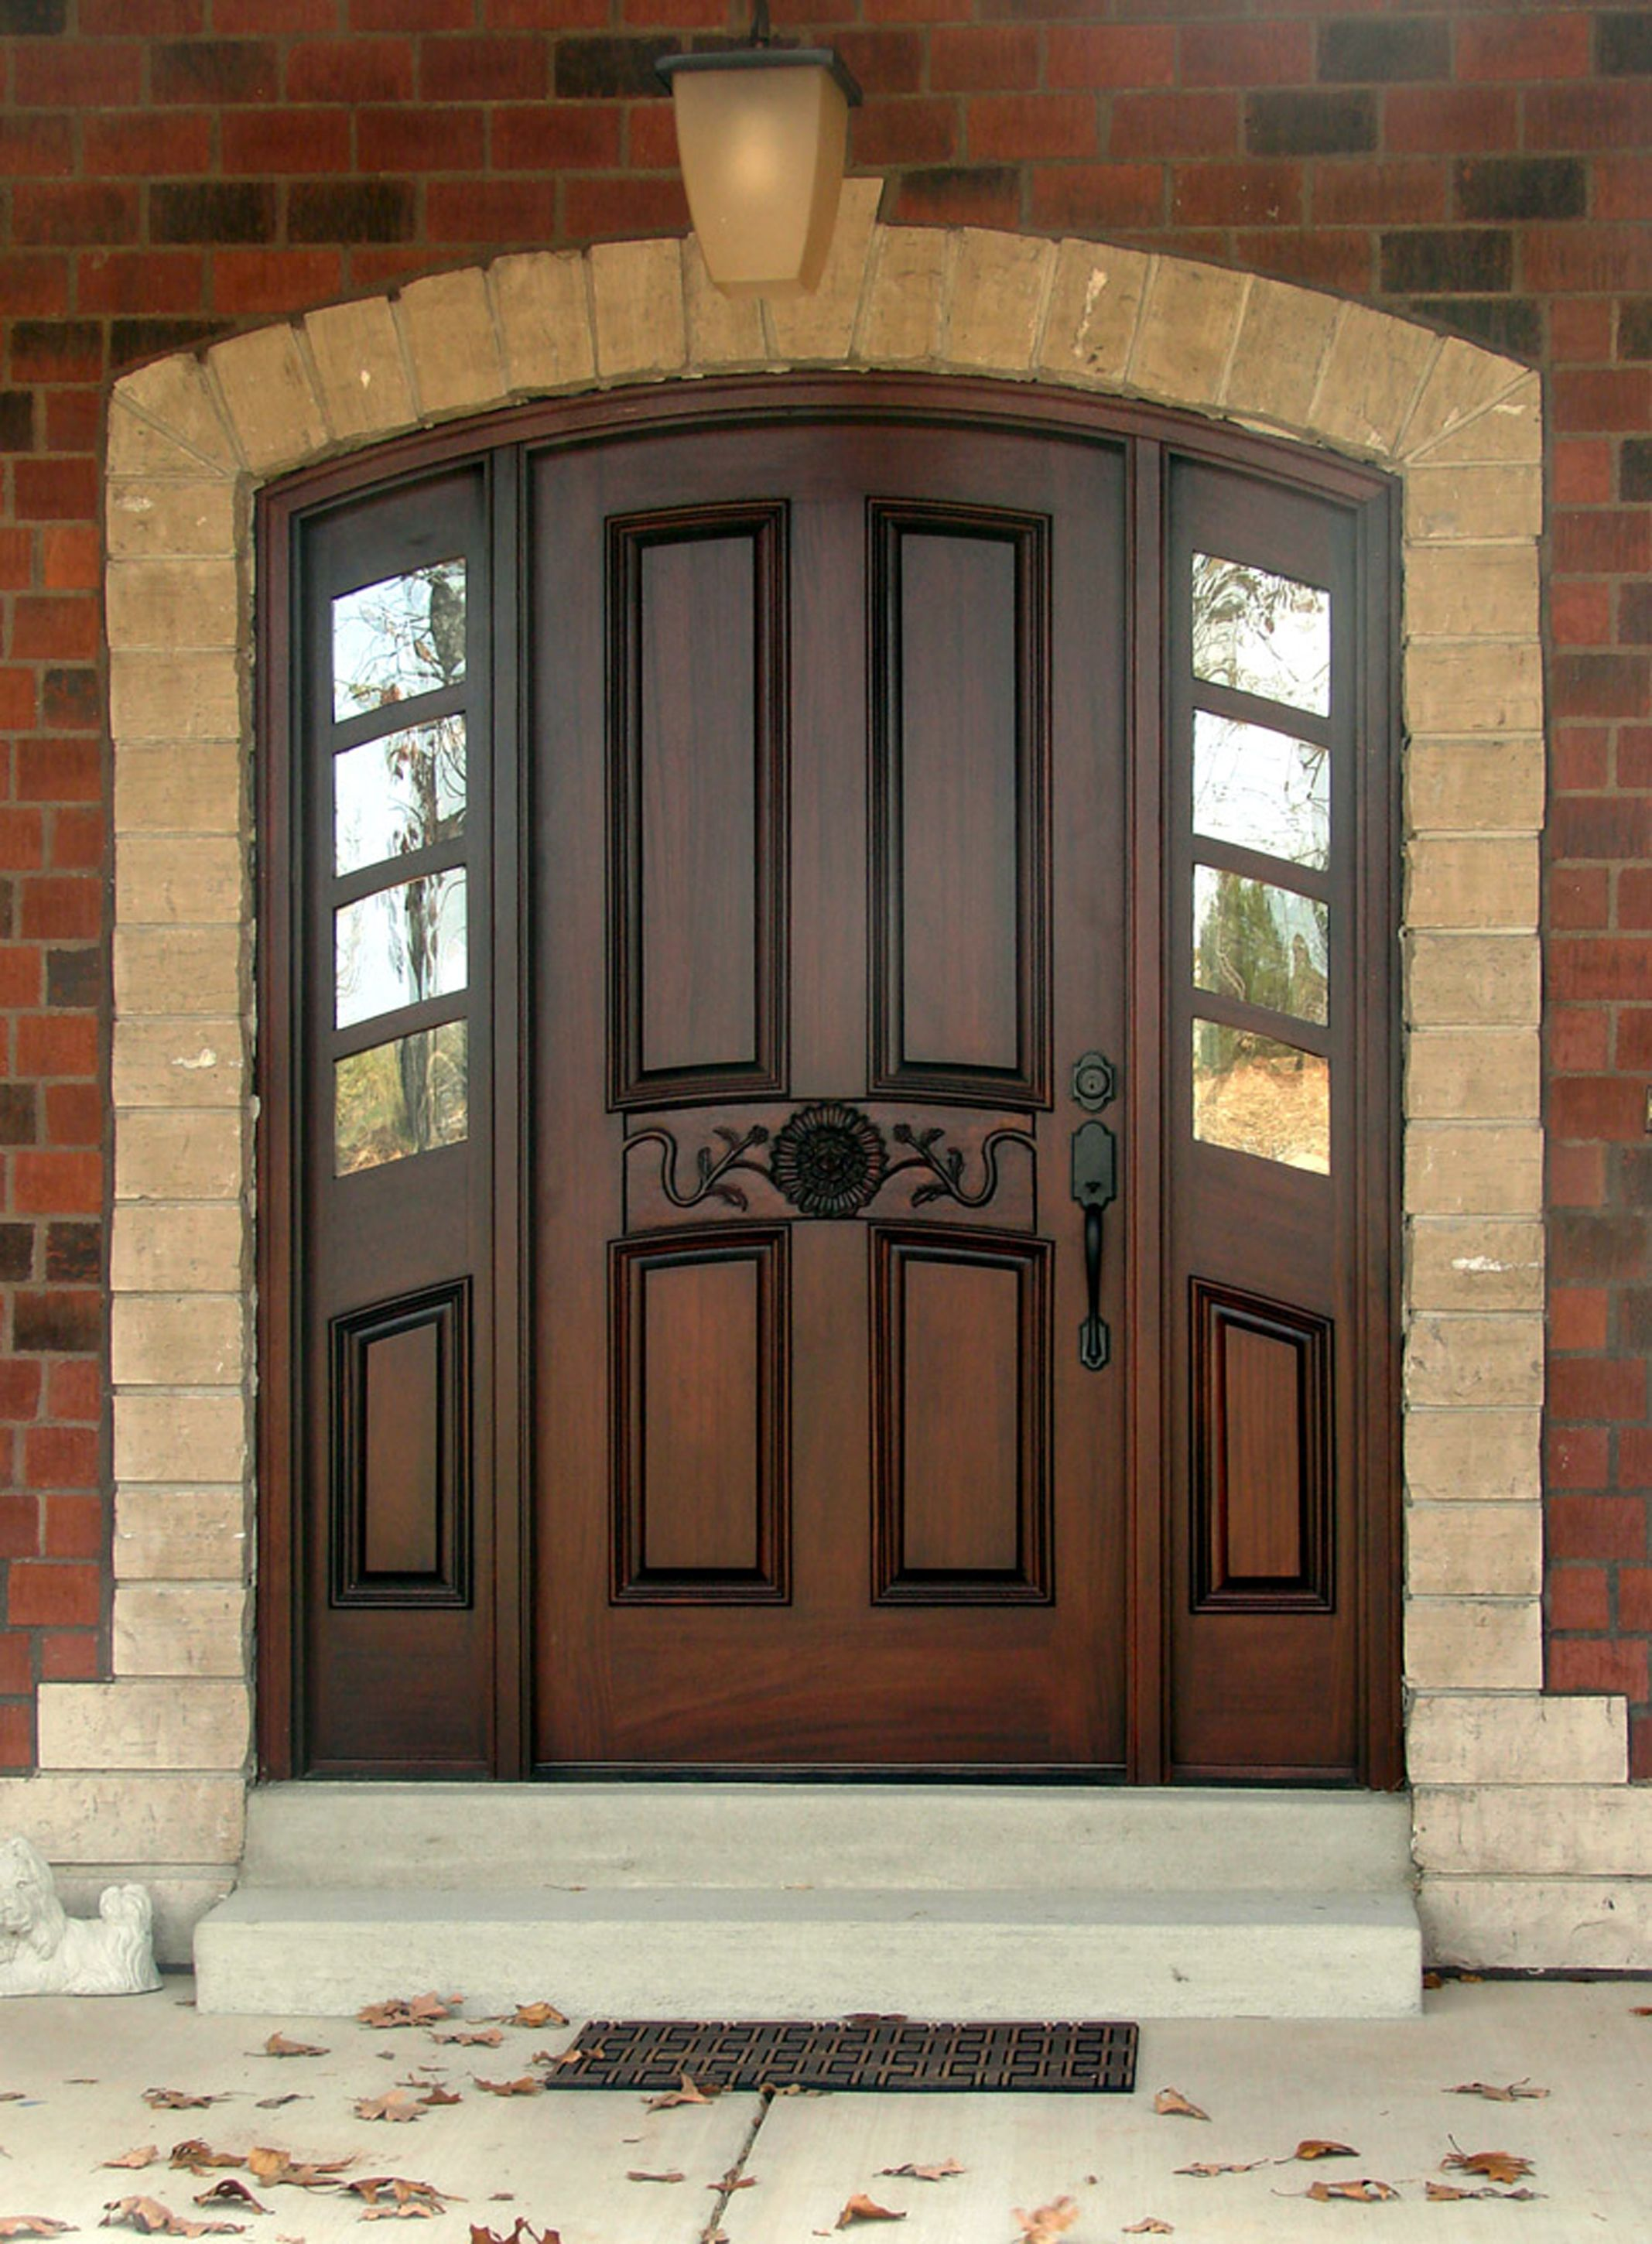 HOW TO CHOOSE THE BEST COLOR FOR YOUR FRONT DOOR Google Search - Choose the best color for your front door